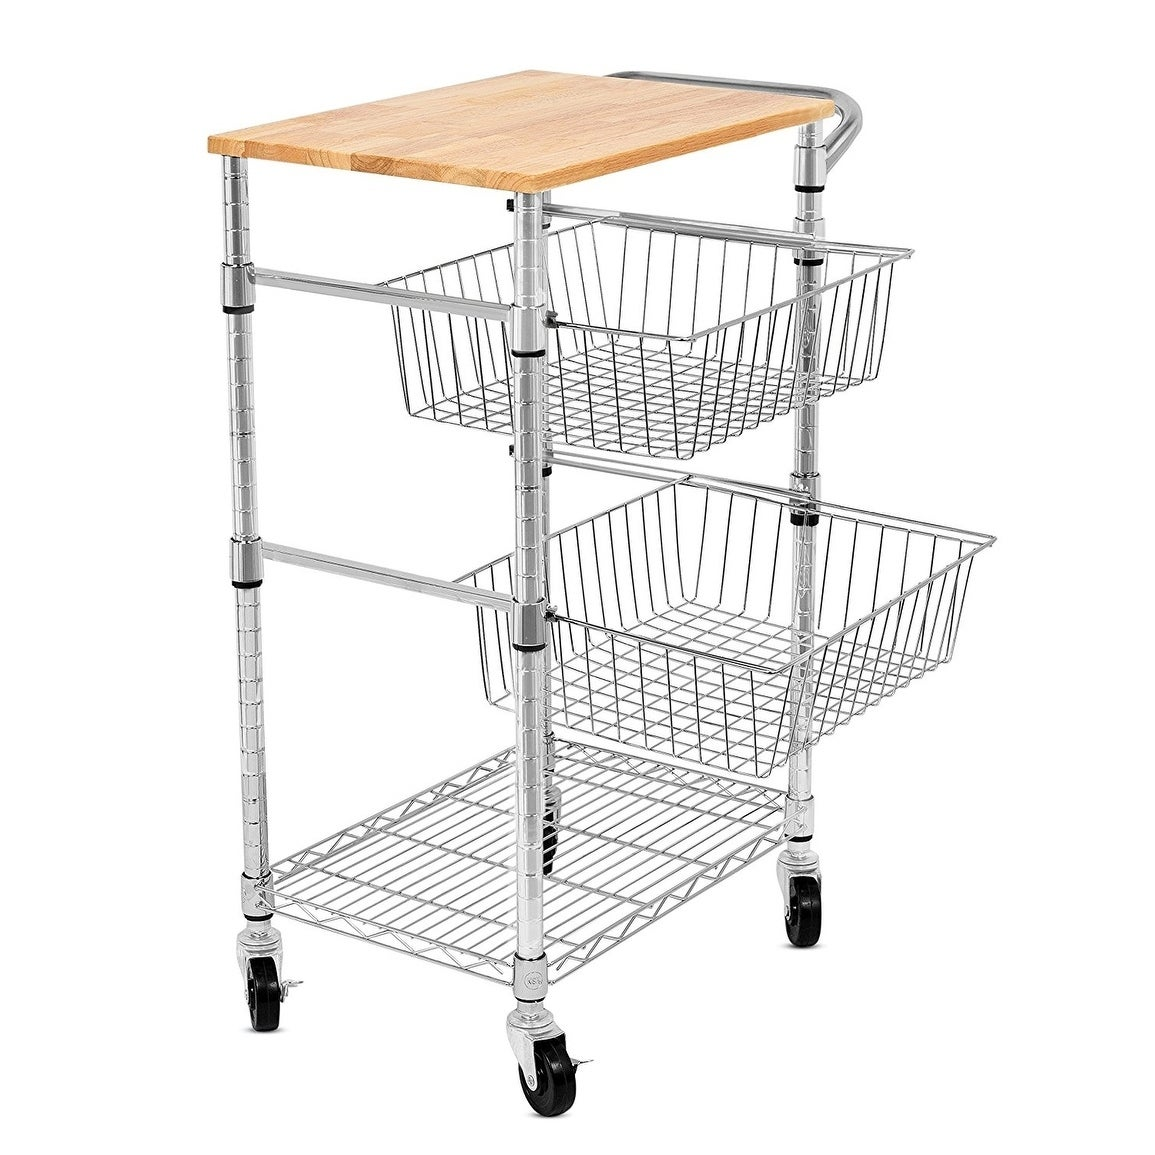 Internet S Best 3 Tier Kitchen Cart With Wire Baskets Island Trolley Locking Wheels 2 Sliding Free Shipping Today